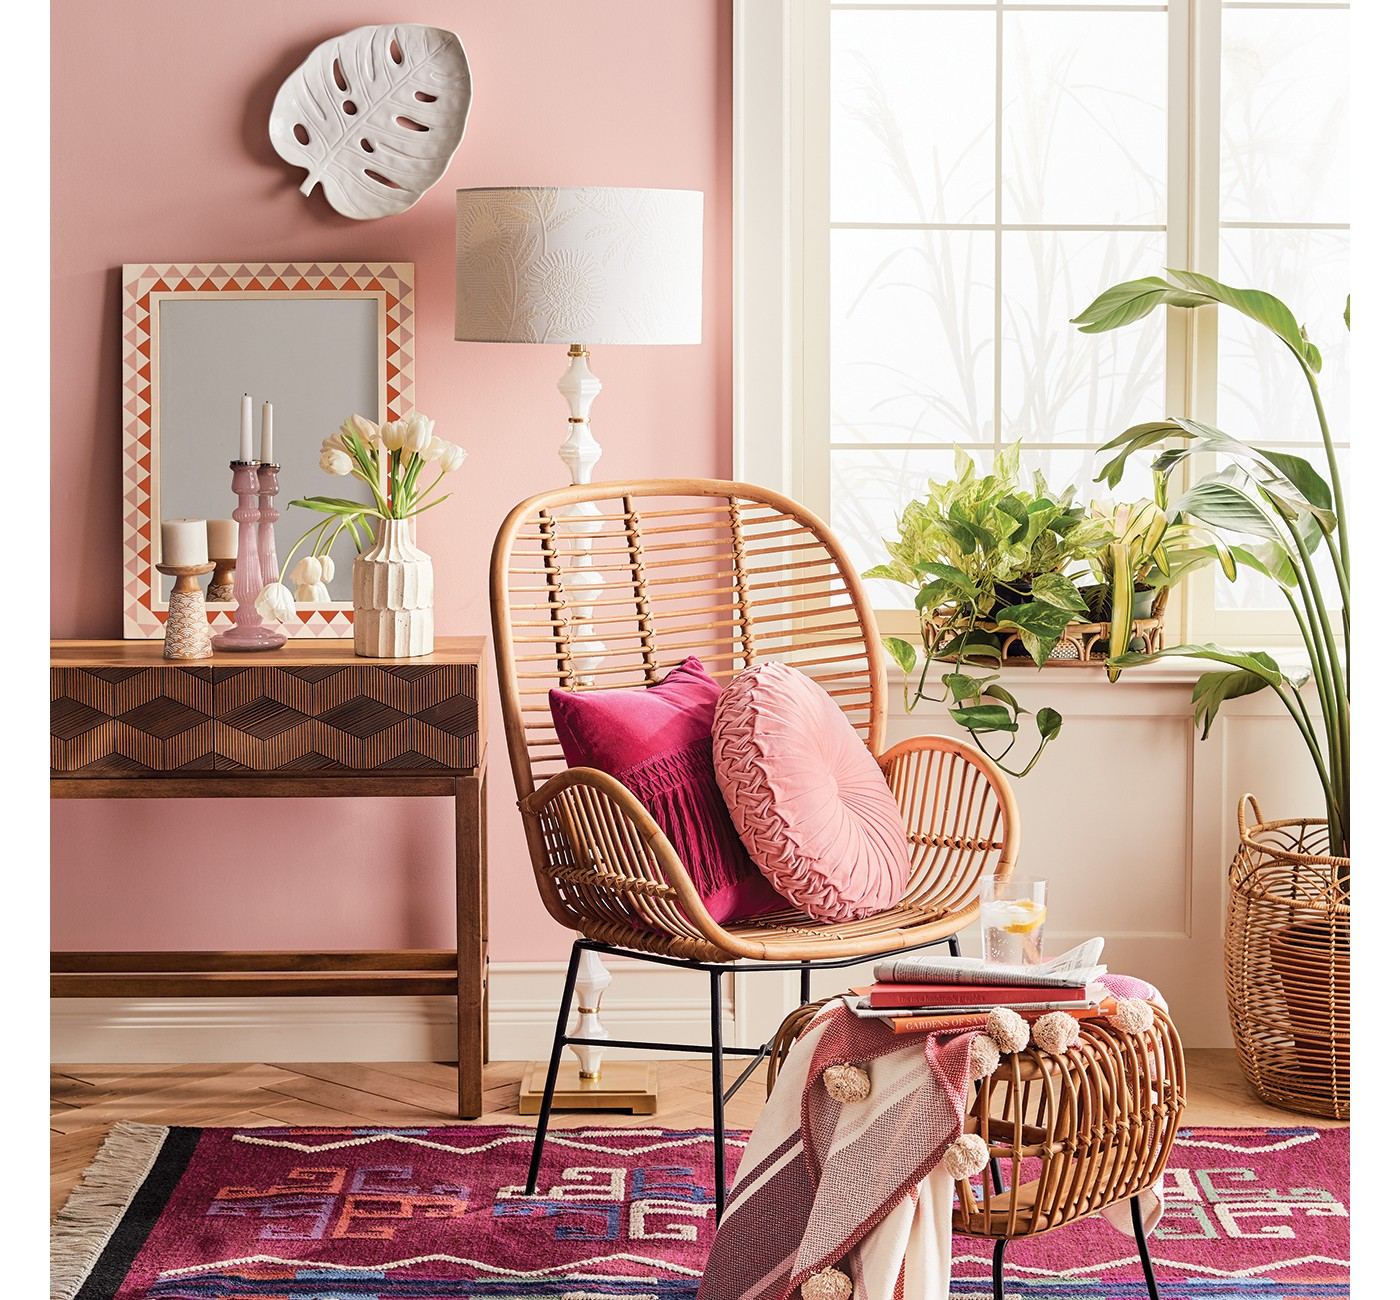 House And Home Decor In 2019: My Favorite Personal Picks From Target's New Opalhouse